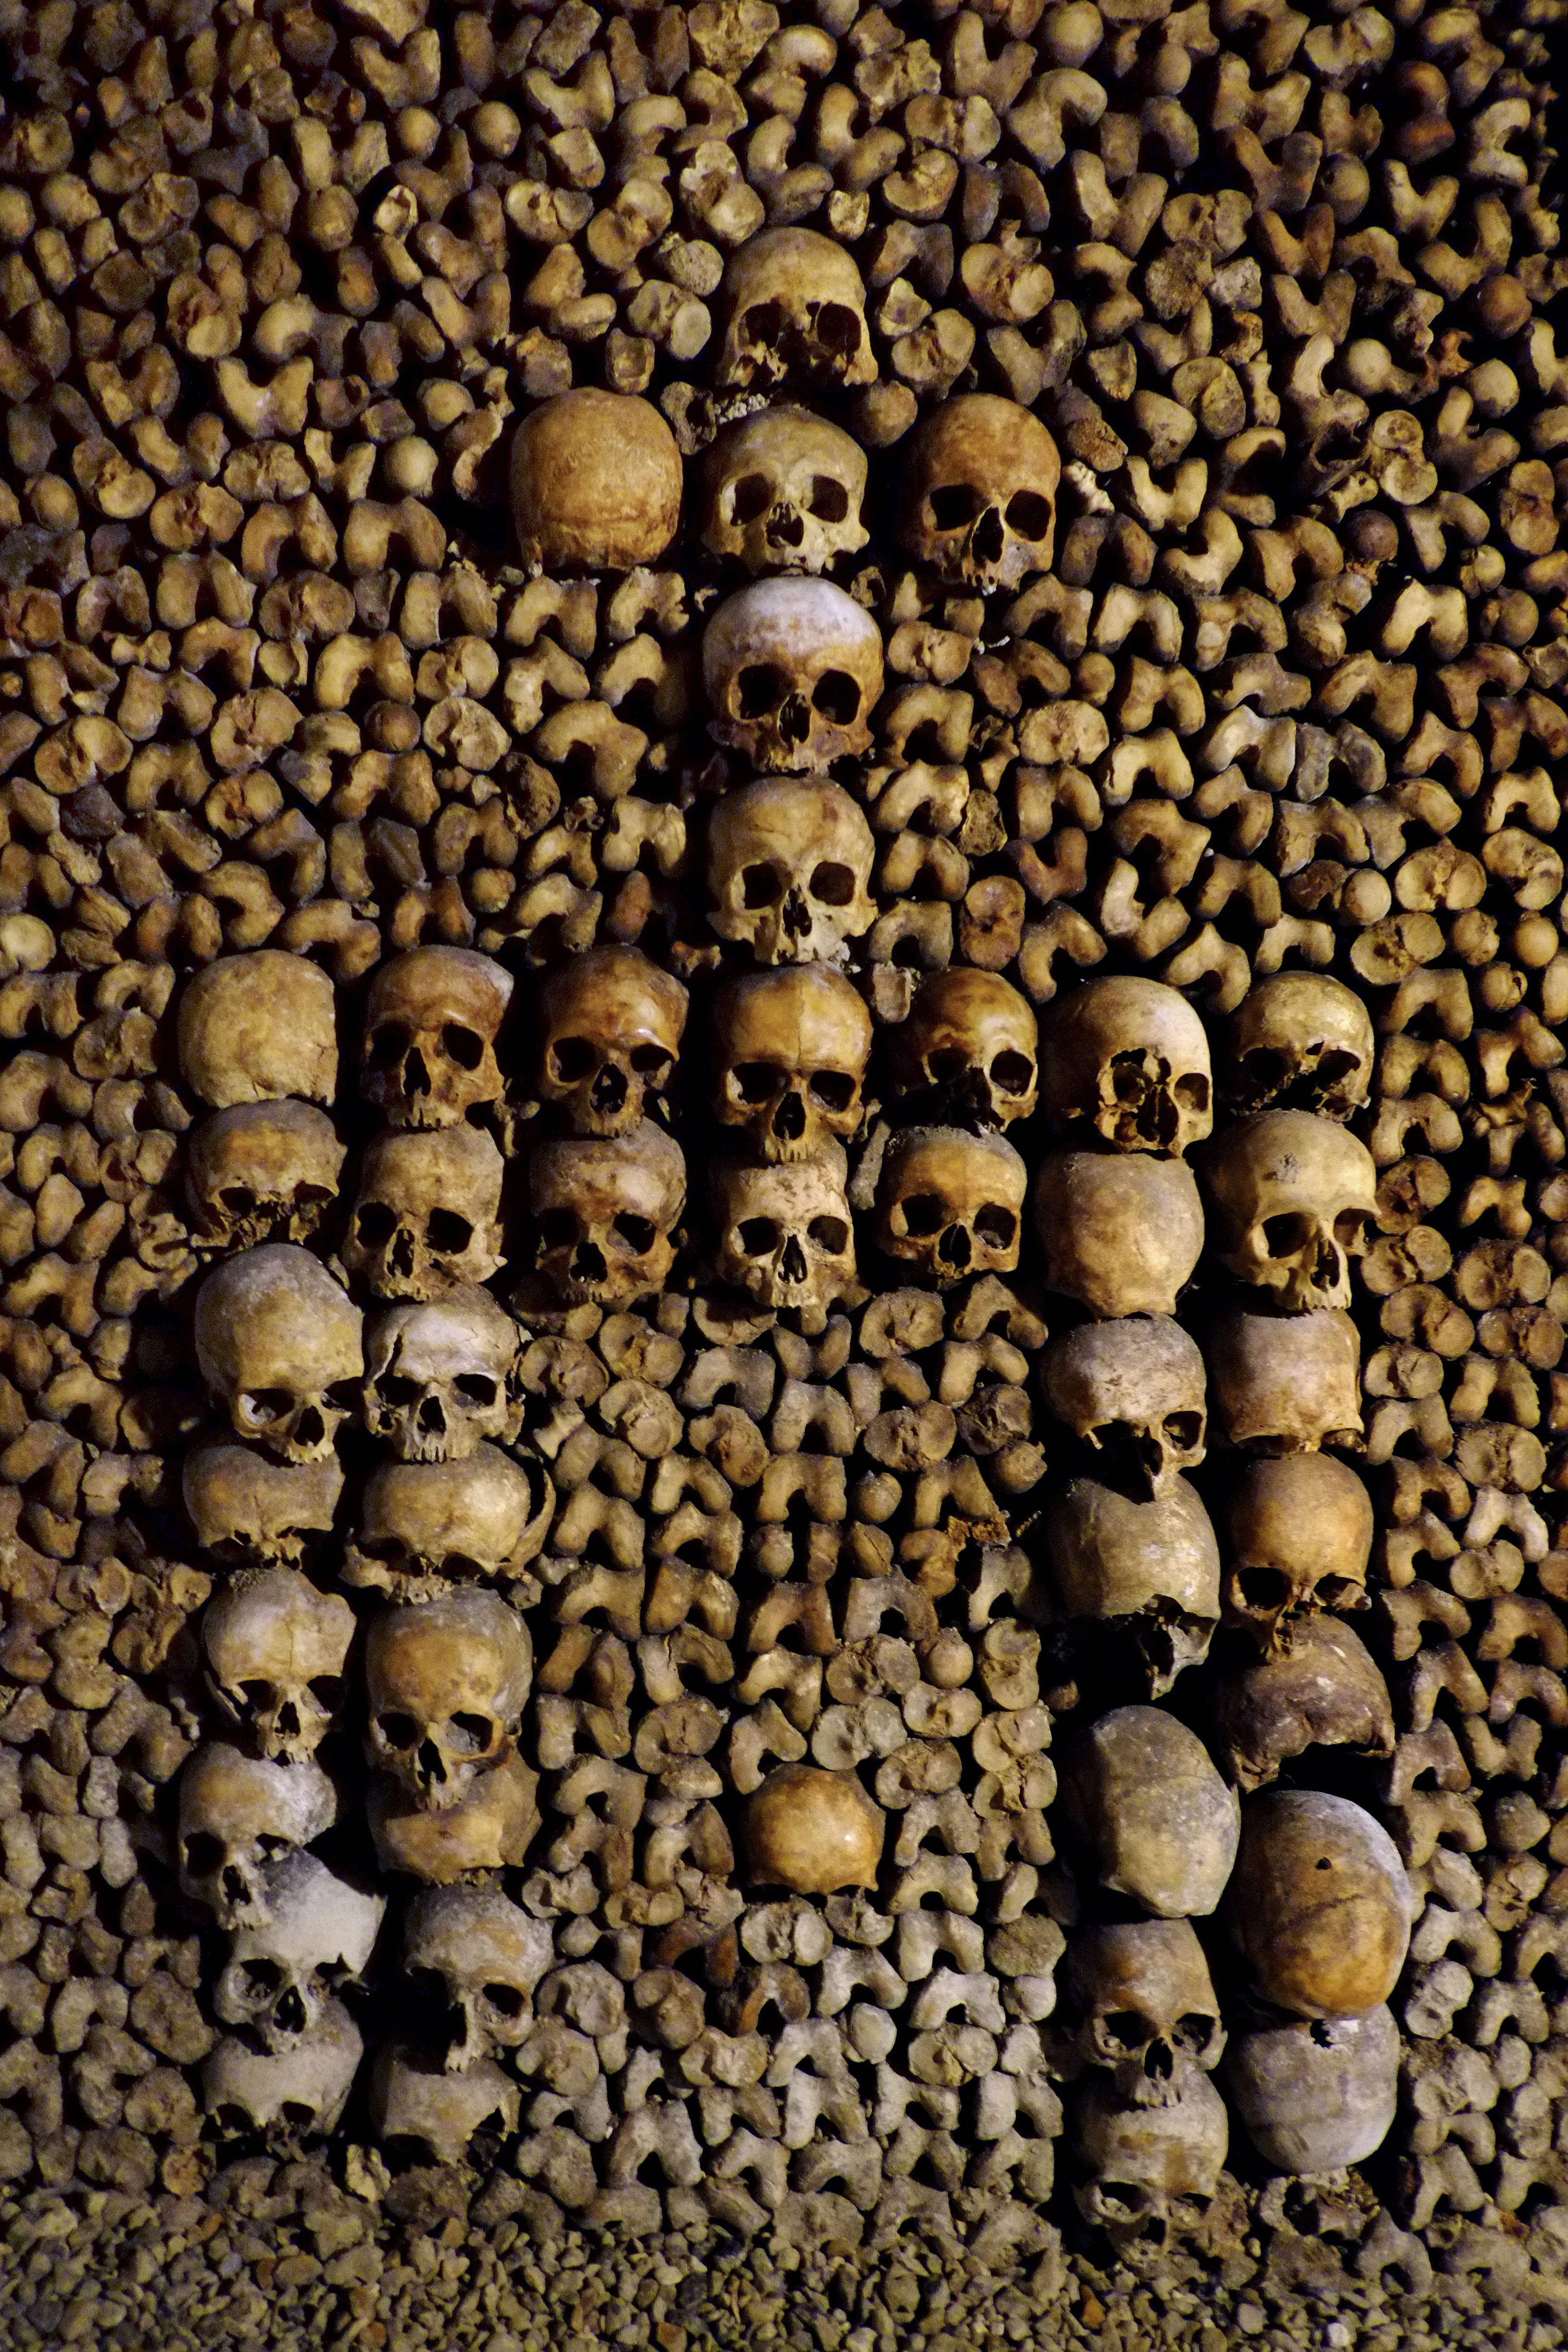 Photo taken on August 7, 2014 at the Catacombs of Paris shows bones stacked and arranged. These underground quarries were used to store the remains of generations of Parisians in a bid to cope with the overcrowding of Paris' cemeteries at the end of the 18th century, and are now a popular tourist attraction.